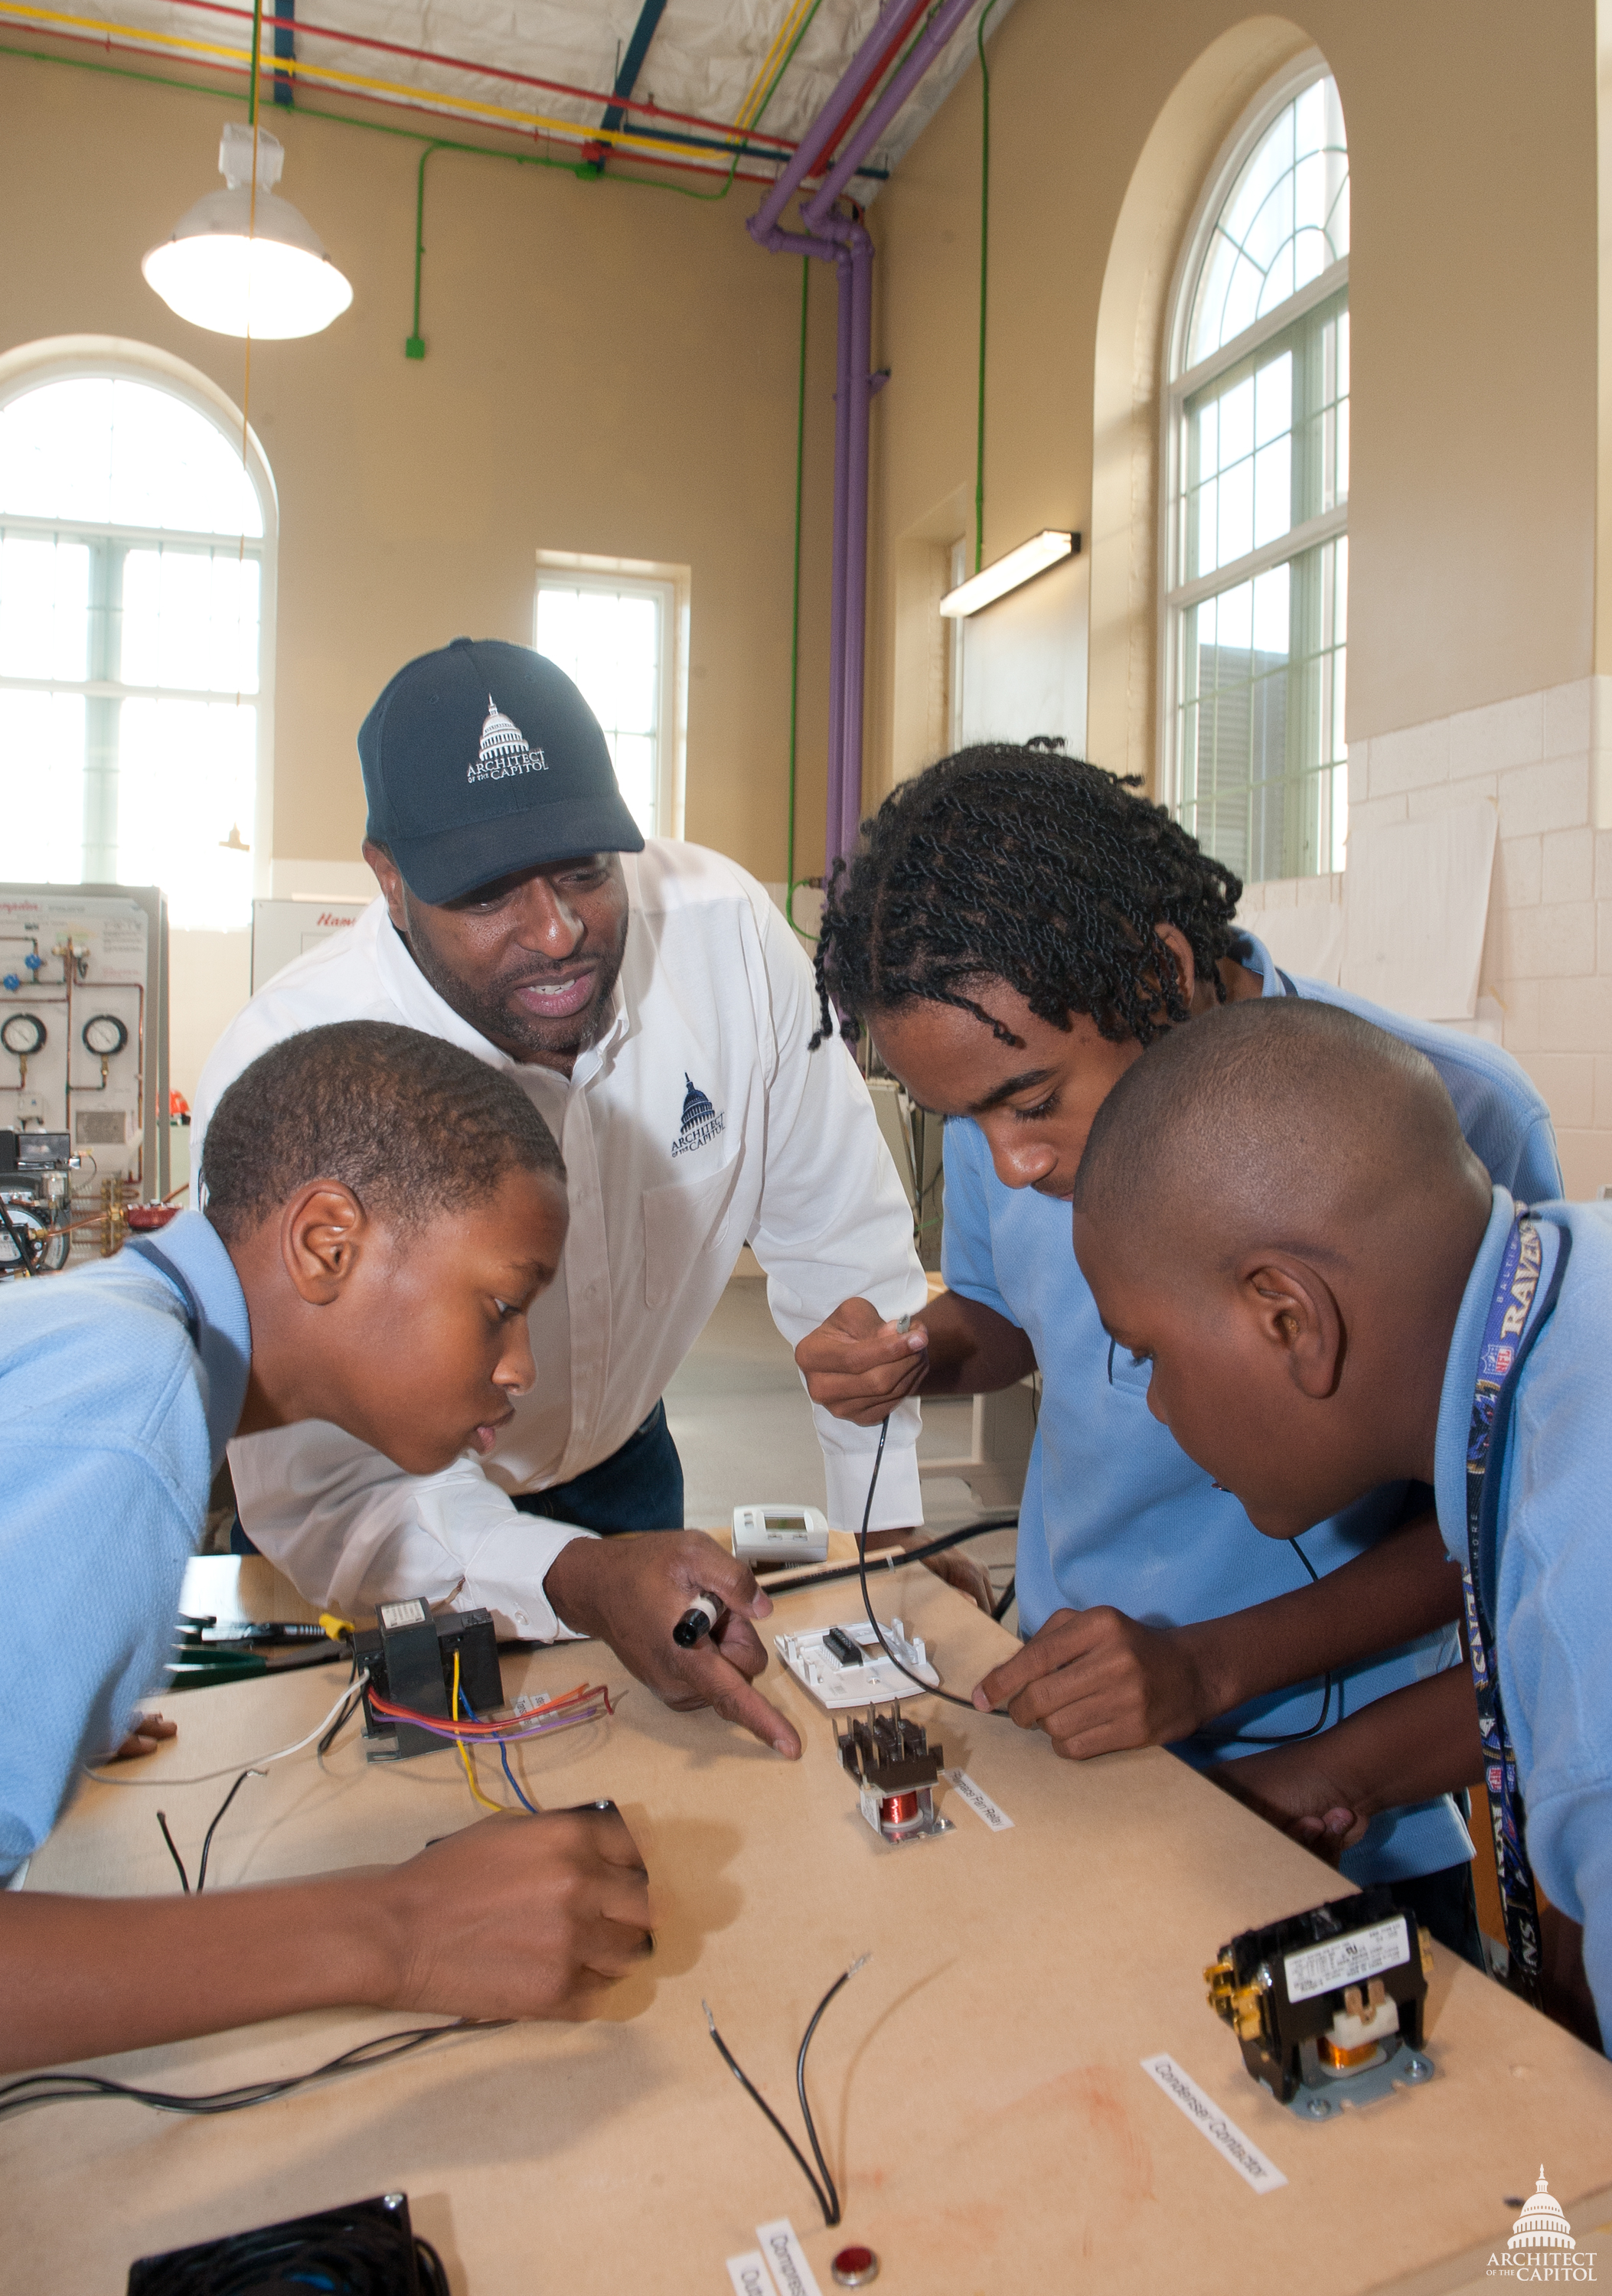 File:Flickr - USCapitol - AOC Employee teaches high school ...